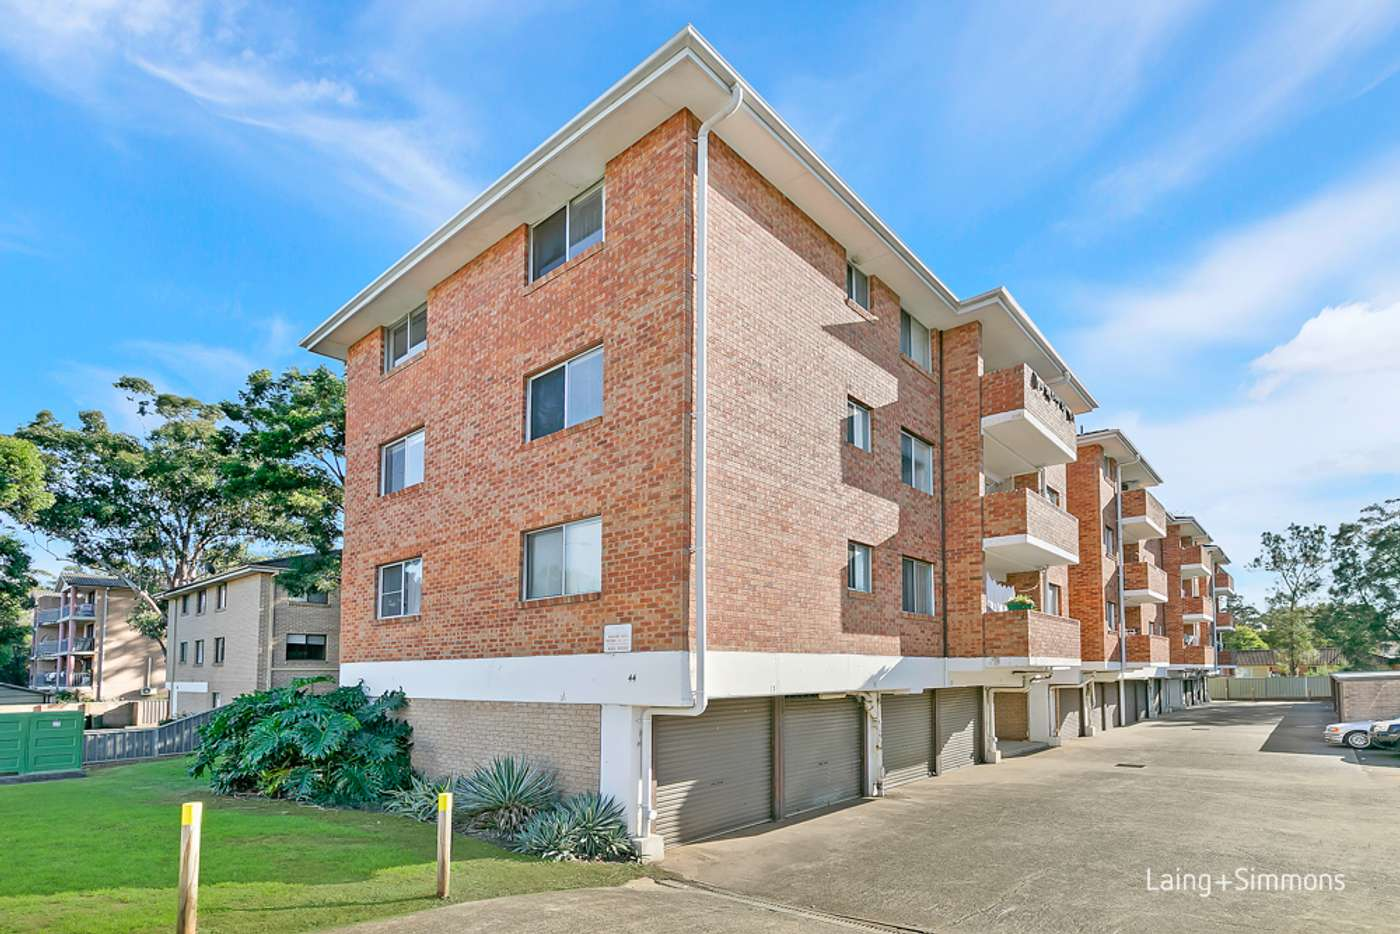 Main view of Homely unit listing, 9/44 Luxford Road, Mount Druitt NSW 2770